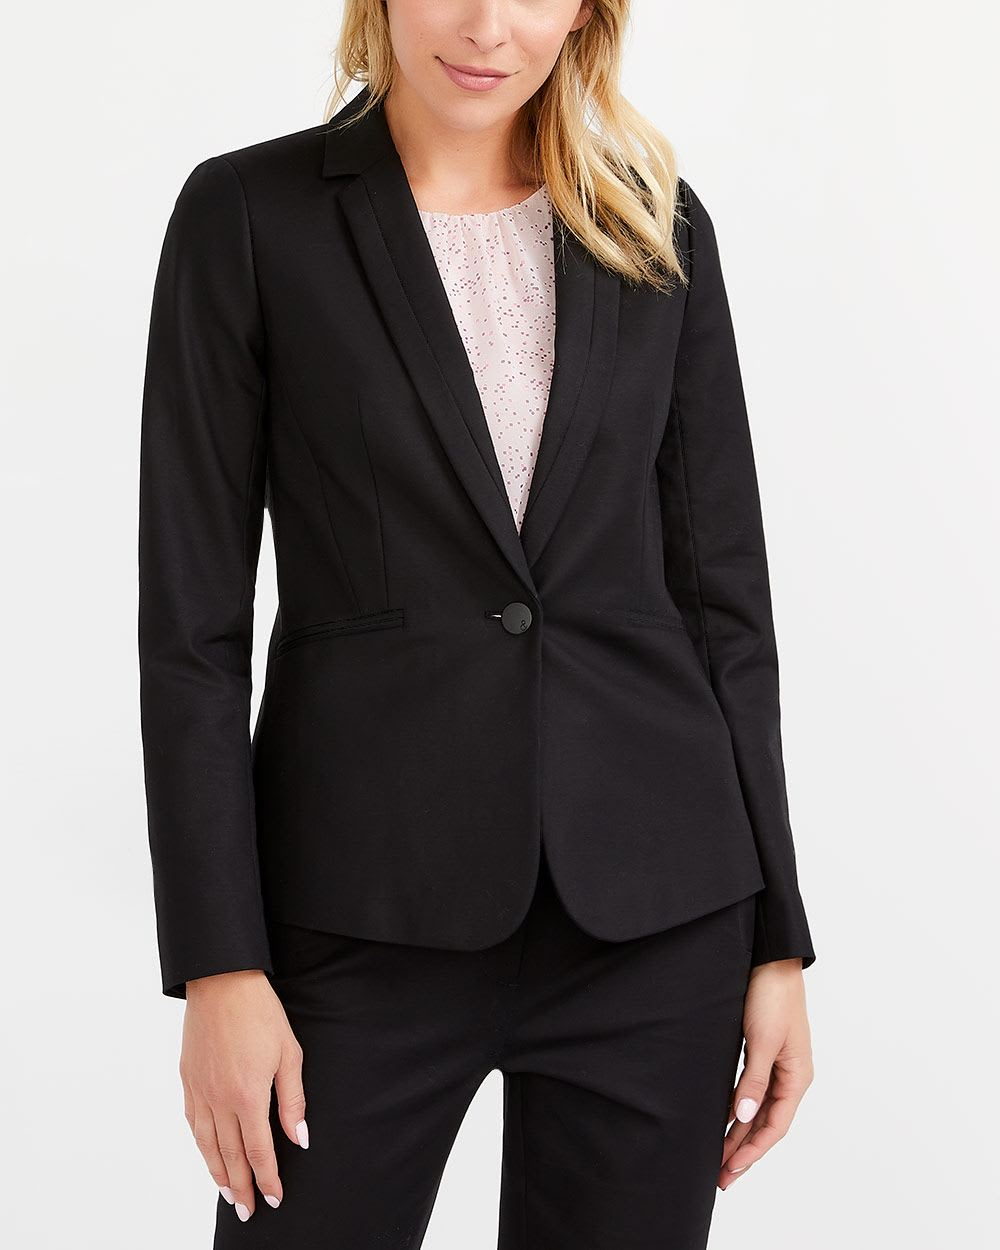 Willow & Thread Cotton Blend Solid Blazer